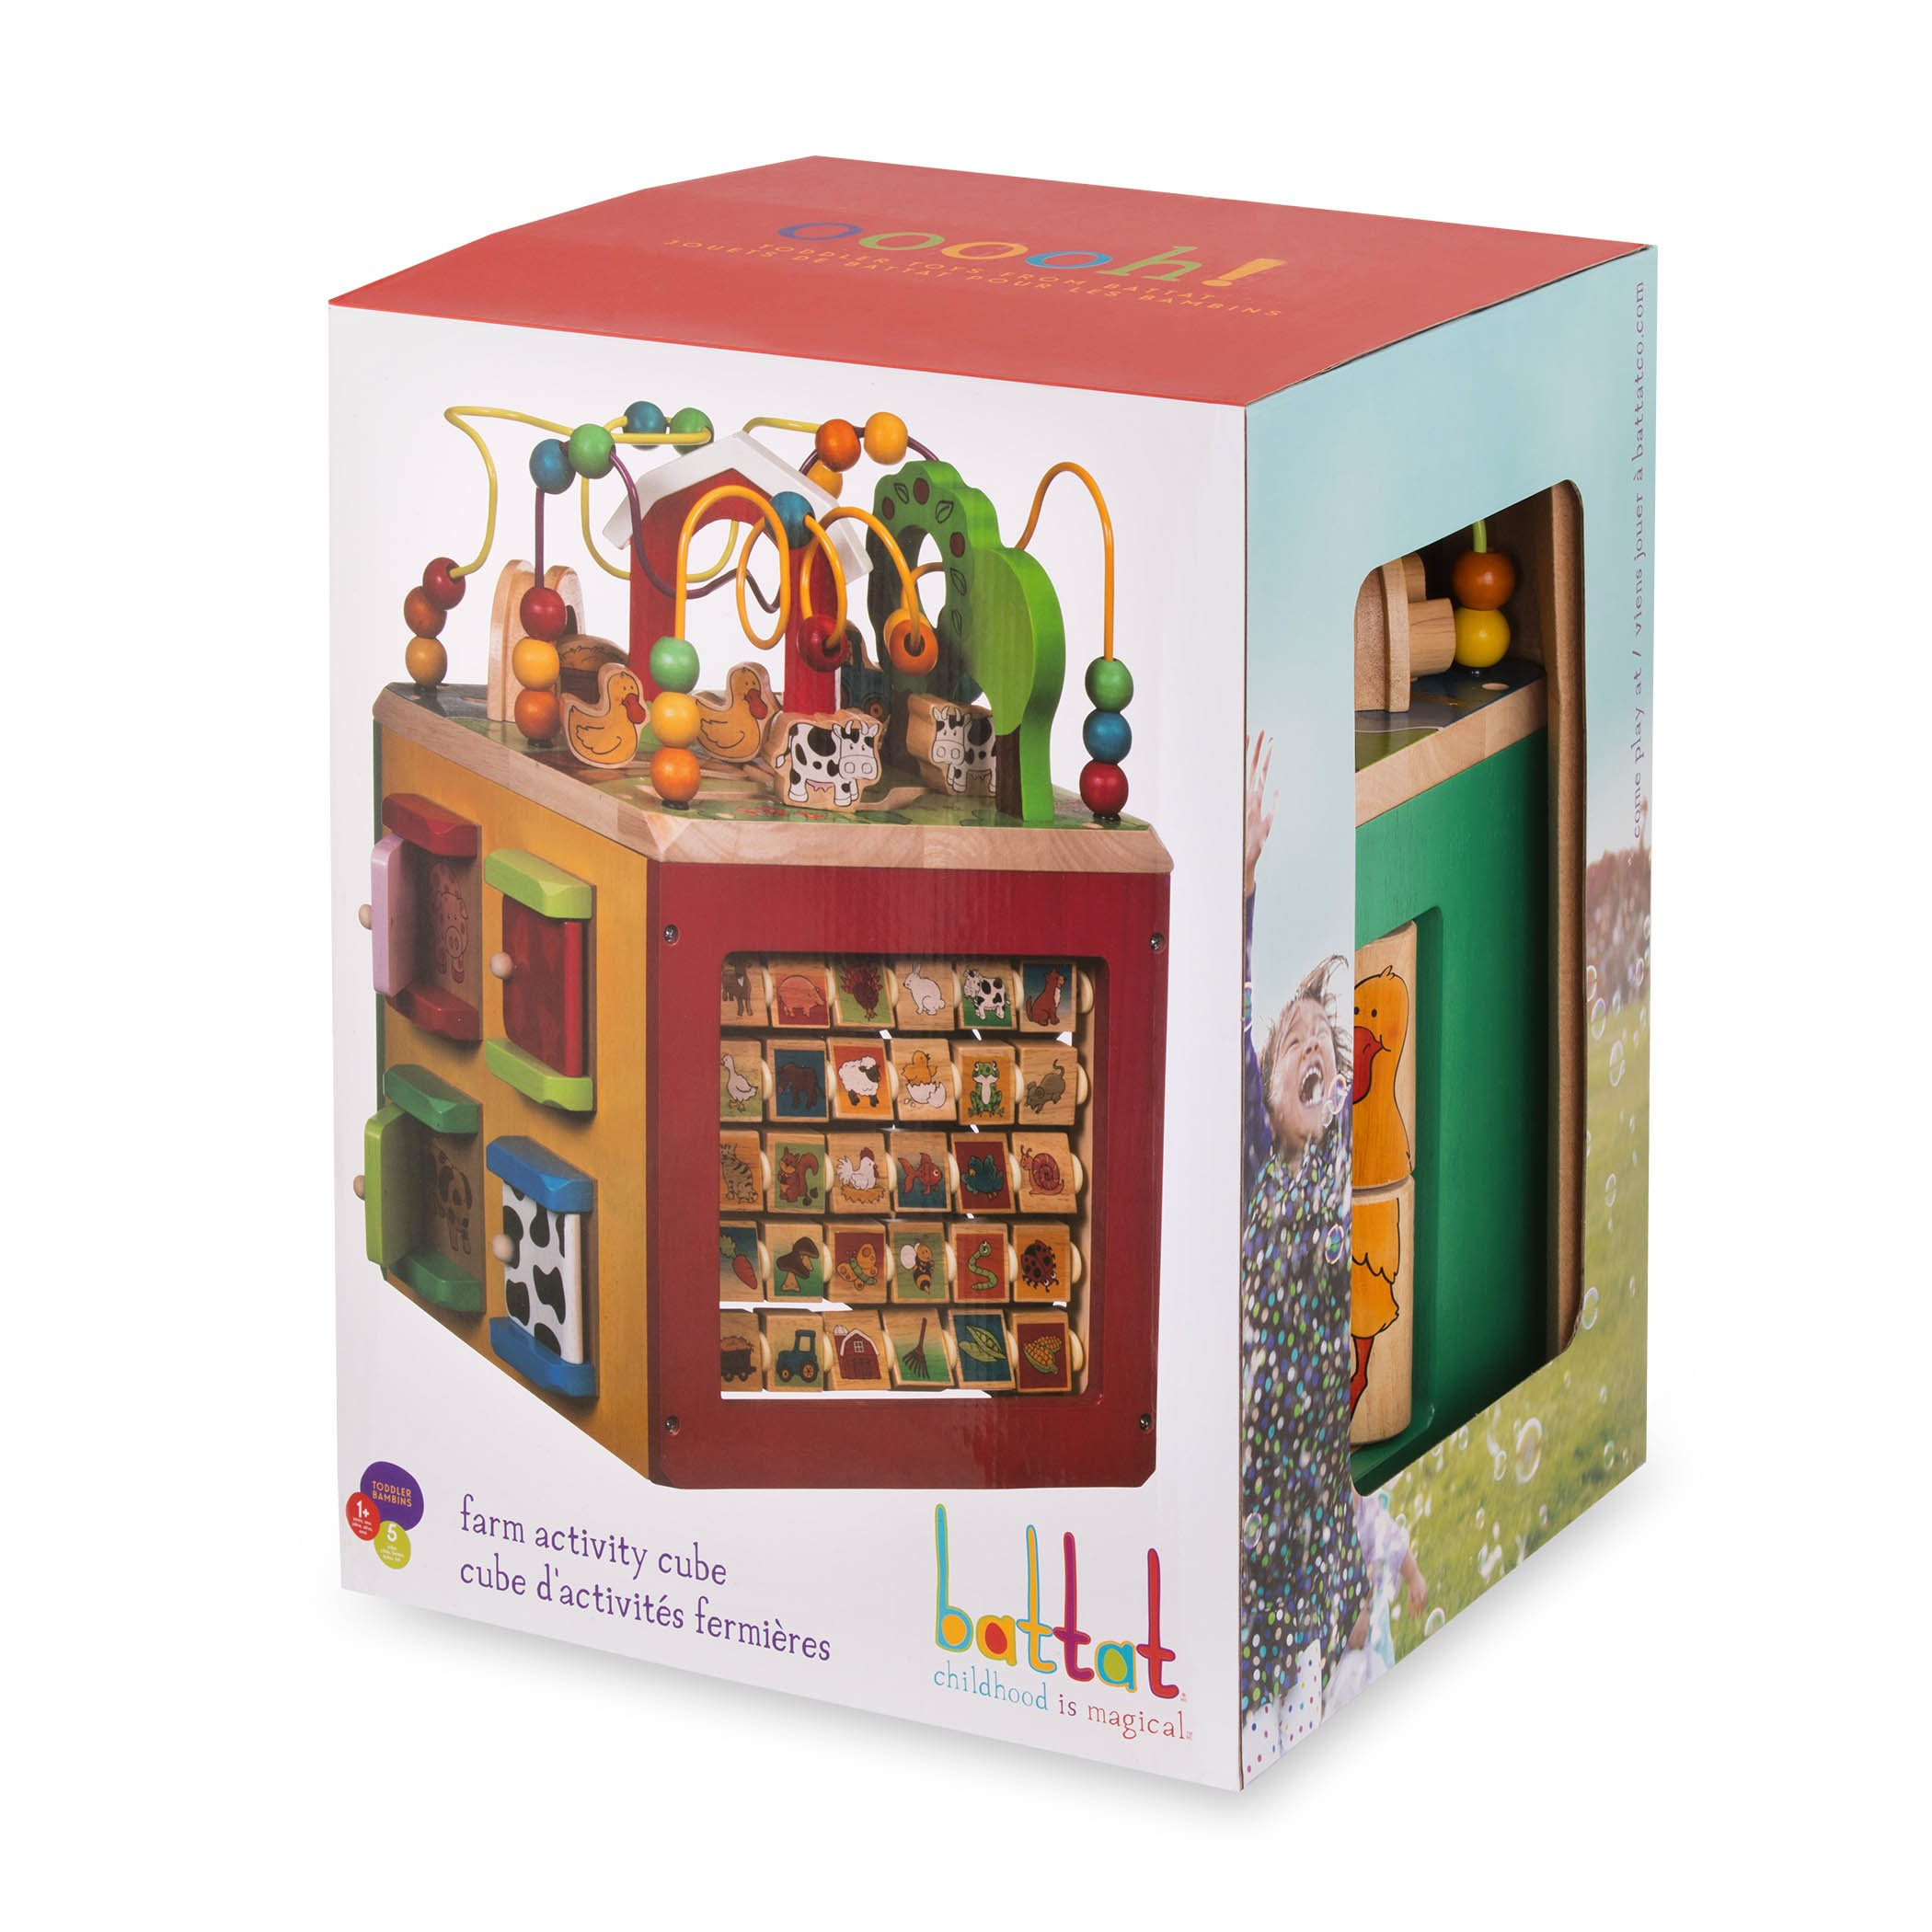 Battat - Wooden Activity Cube - Discover Farm Animals Activity Center for Kids 1 year + by Battat (Image #7)